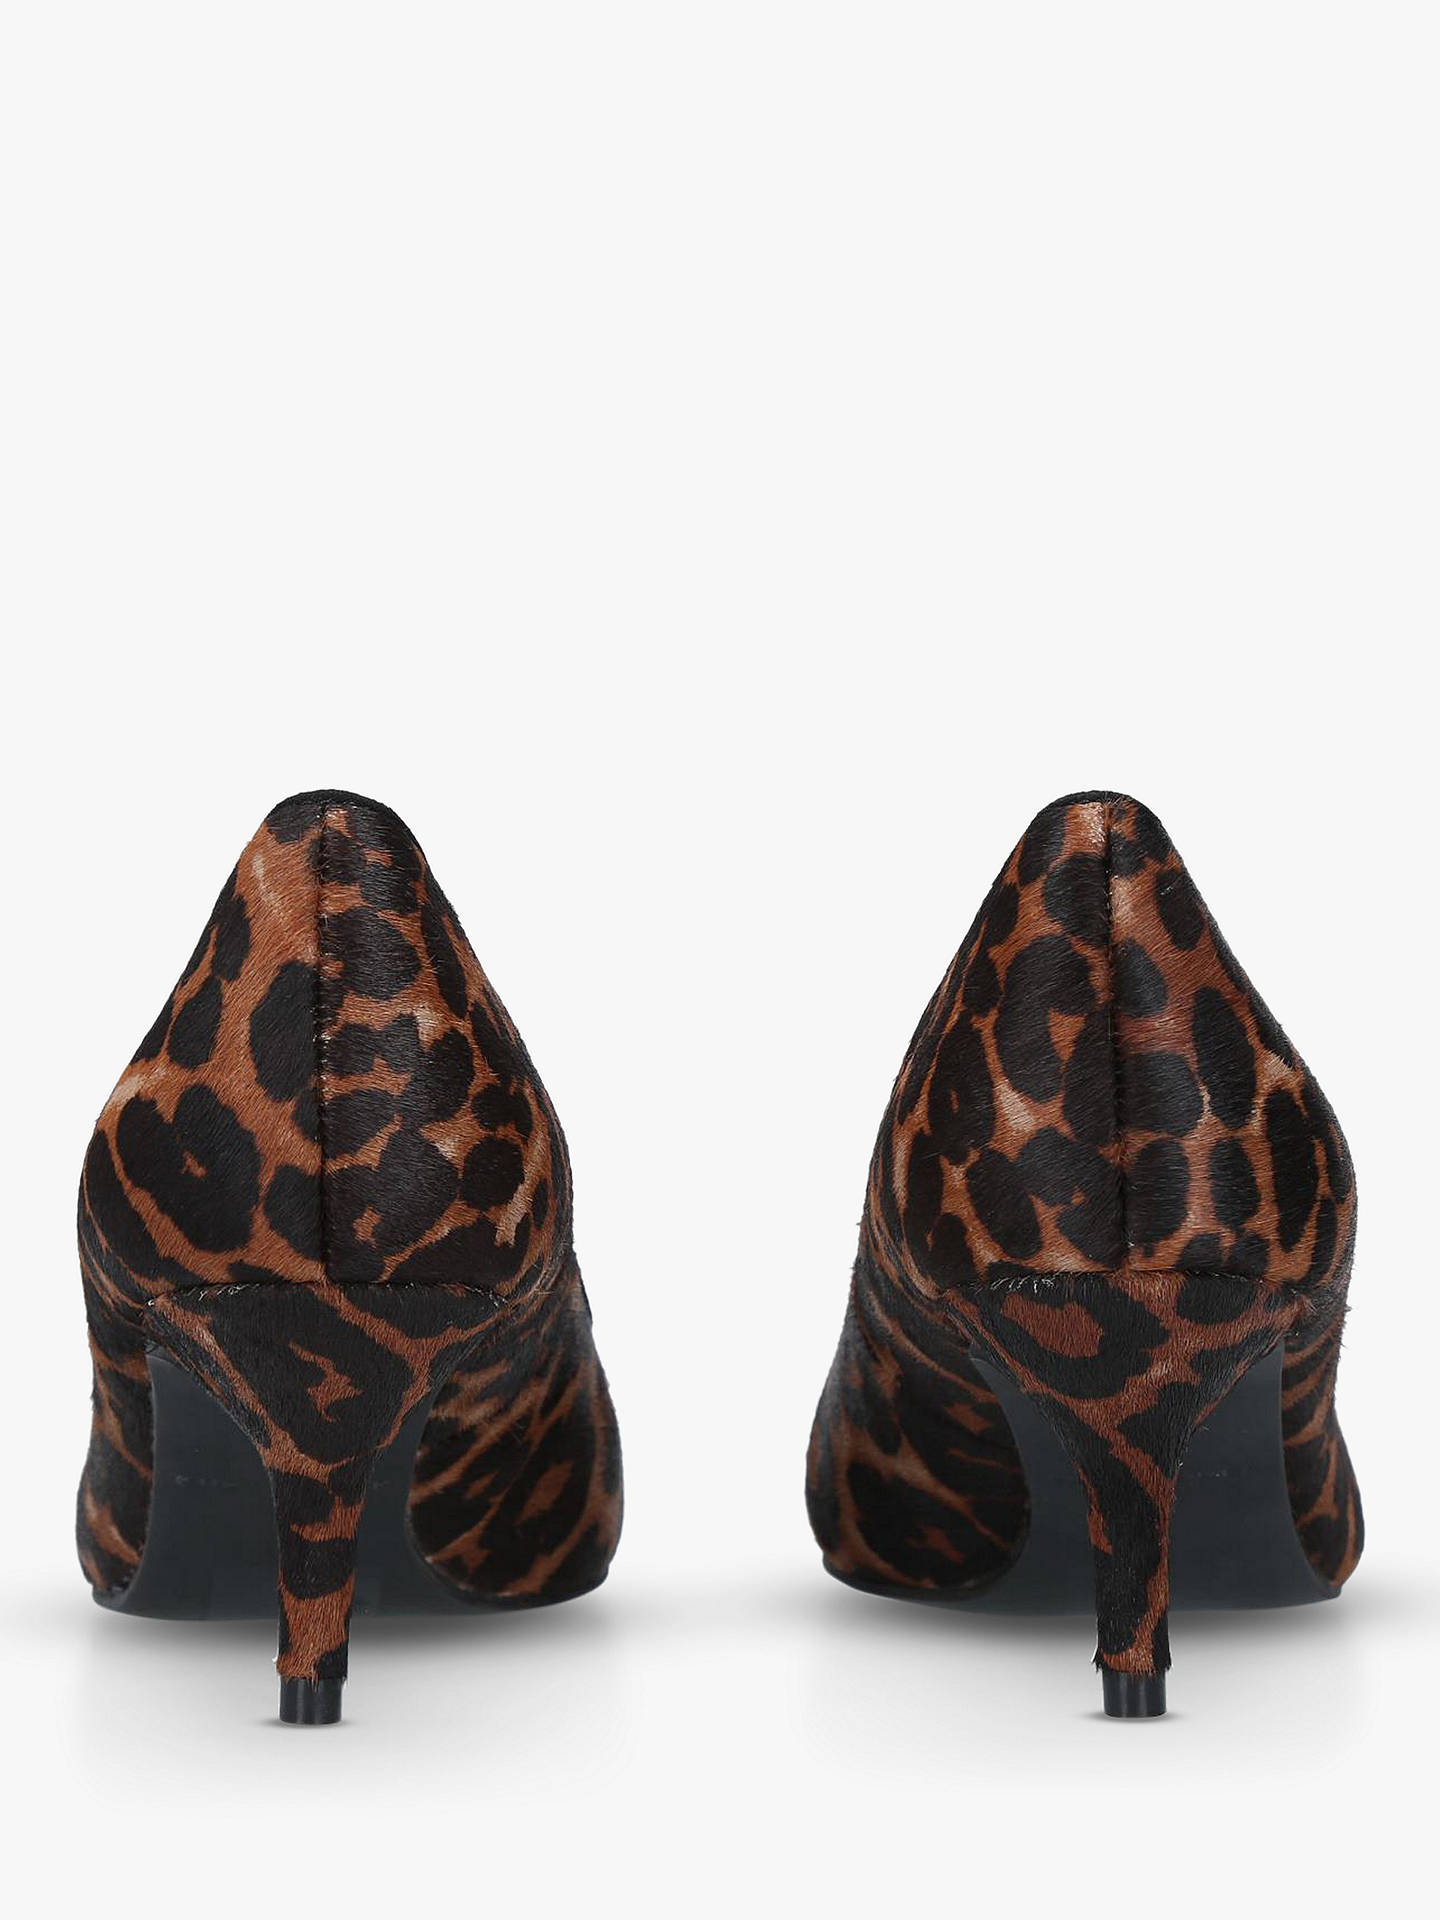 702ad57434c Kurt Geiger London Peony Court Shoes, Leopard Leather at John Lewis ...